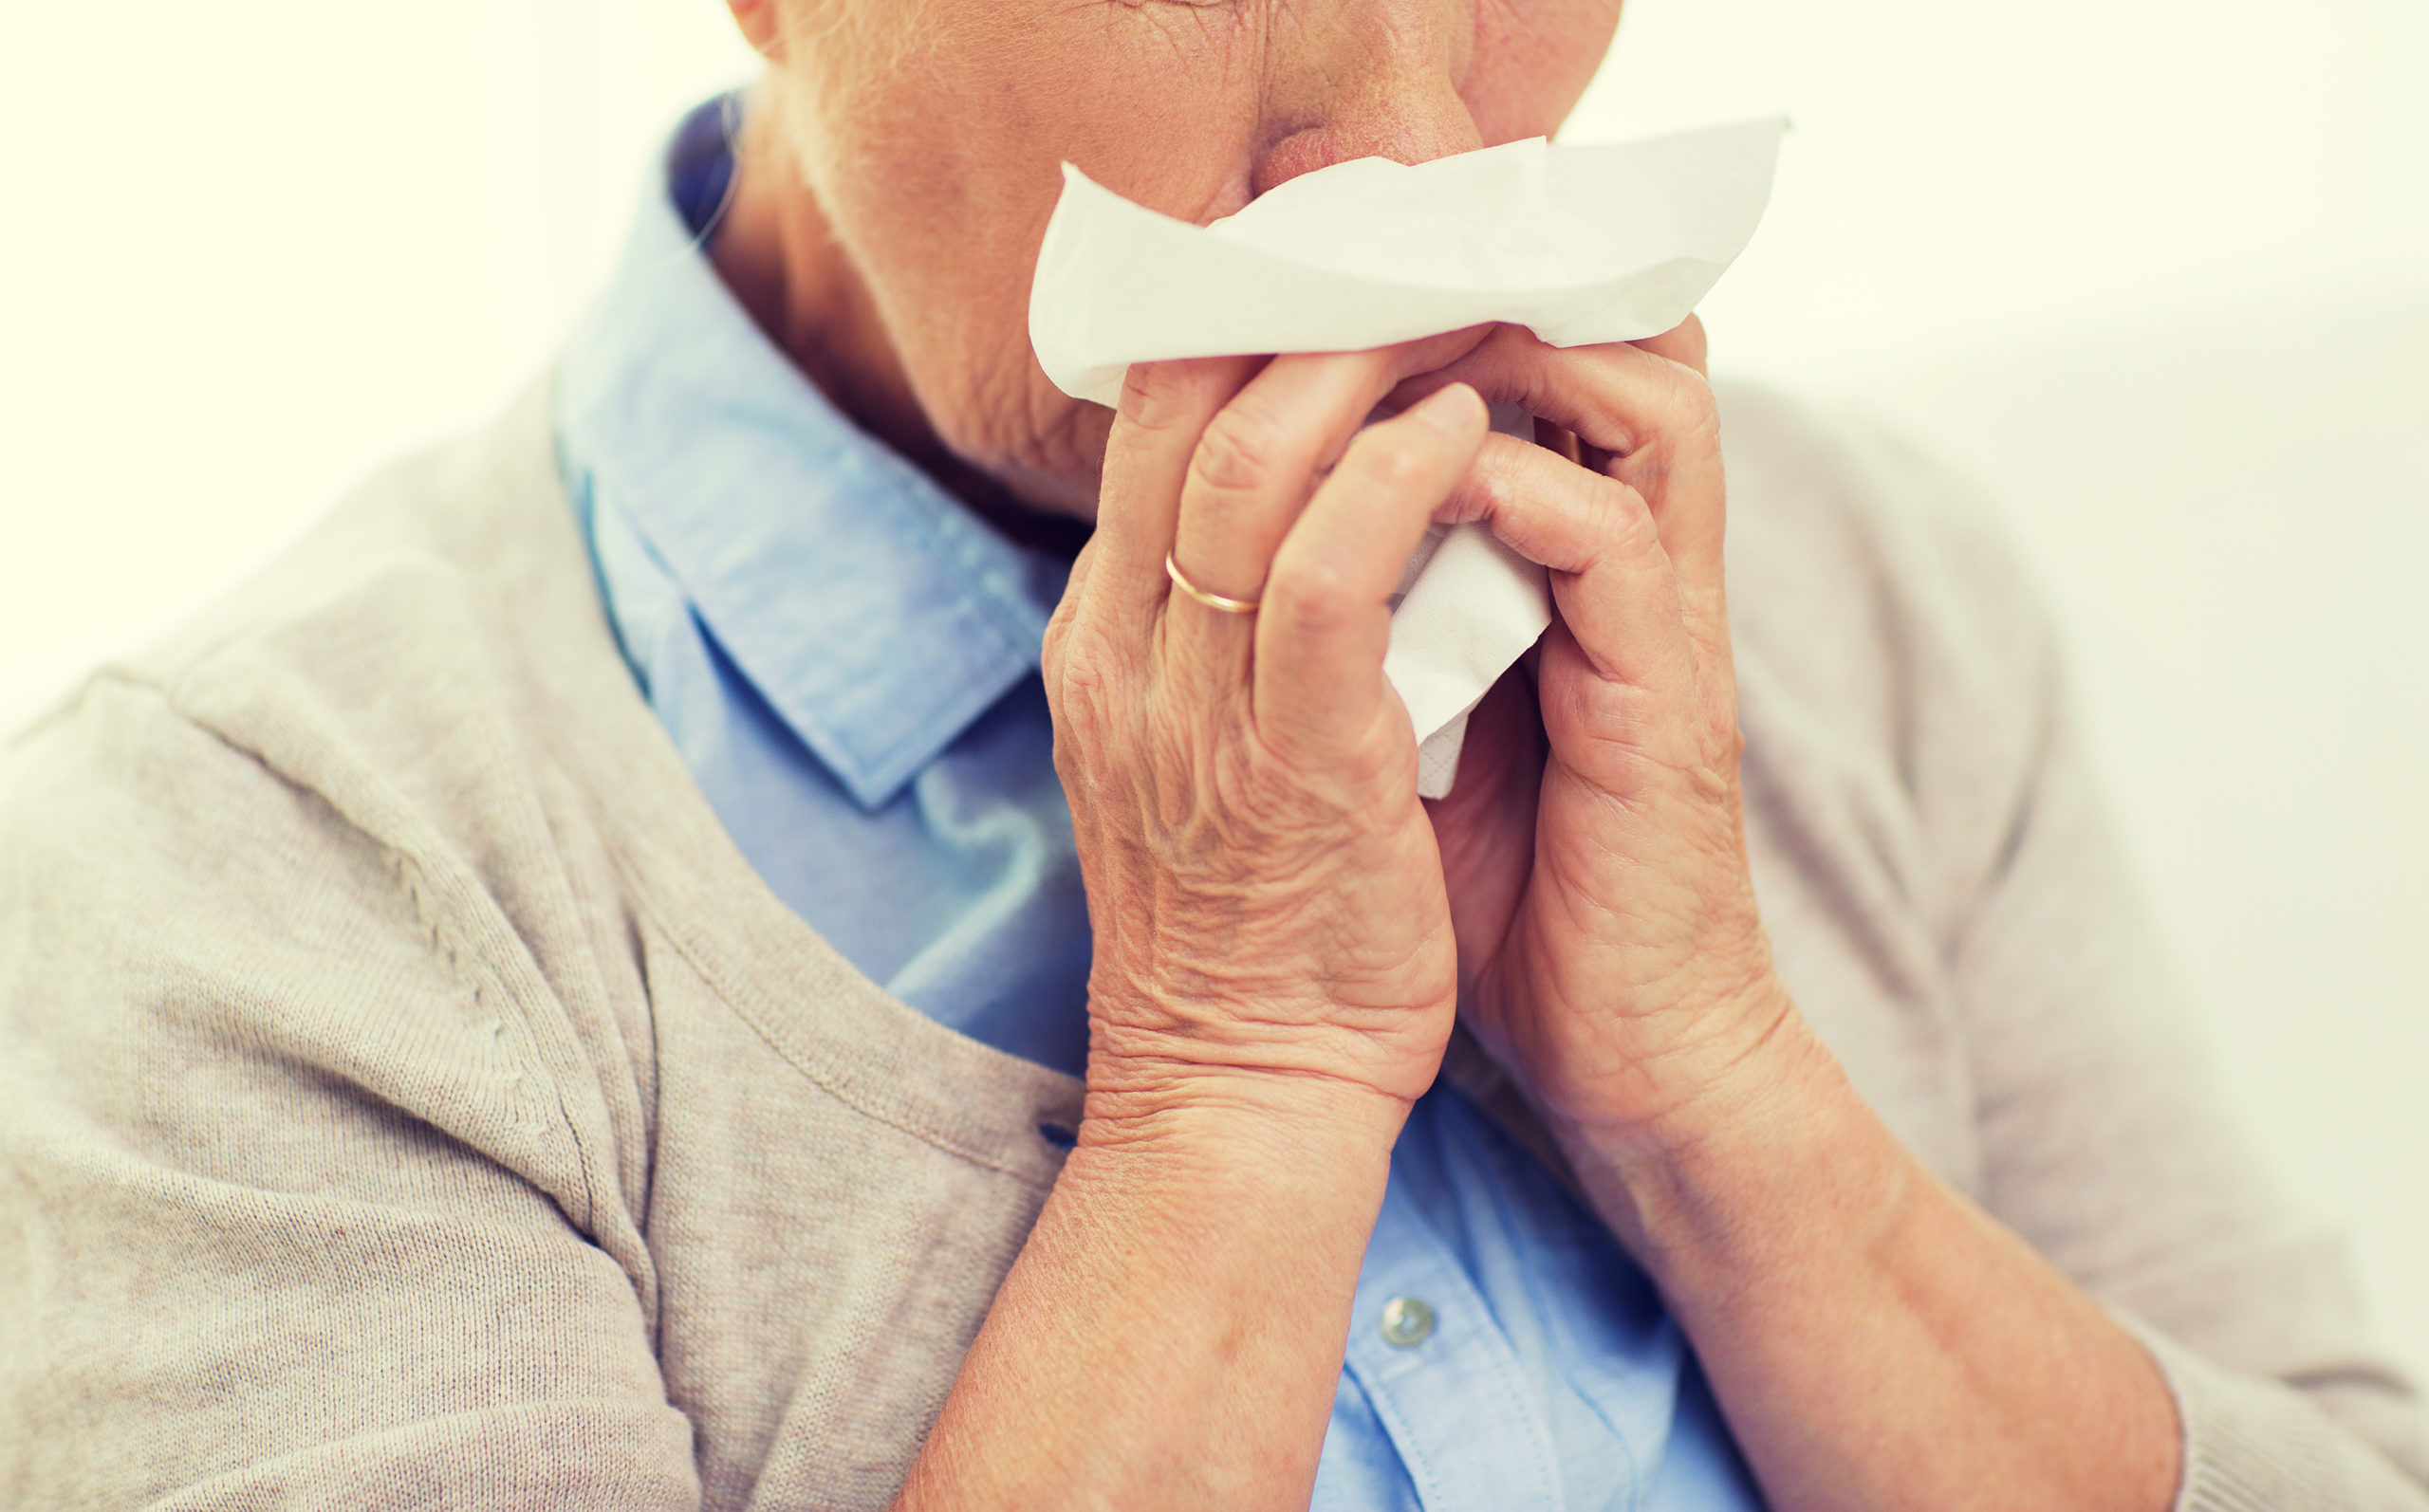 Infection risks in care homes